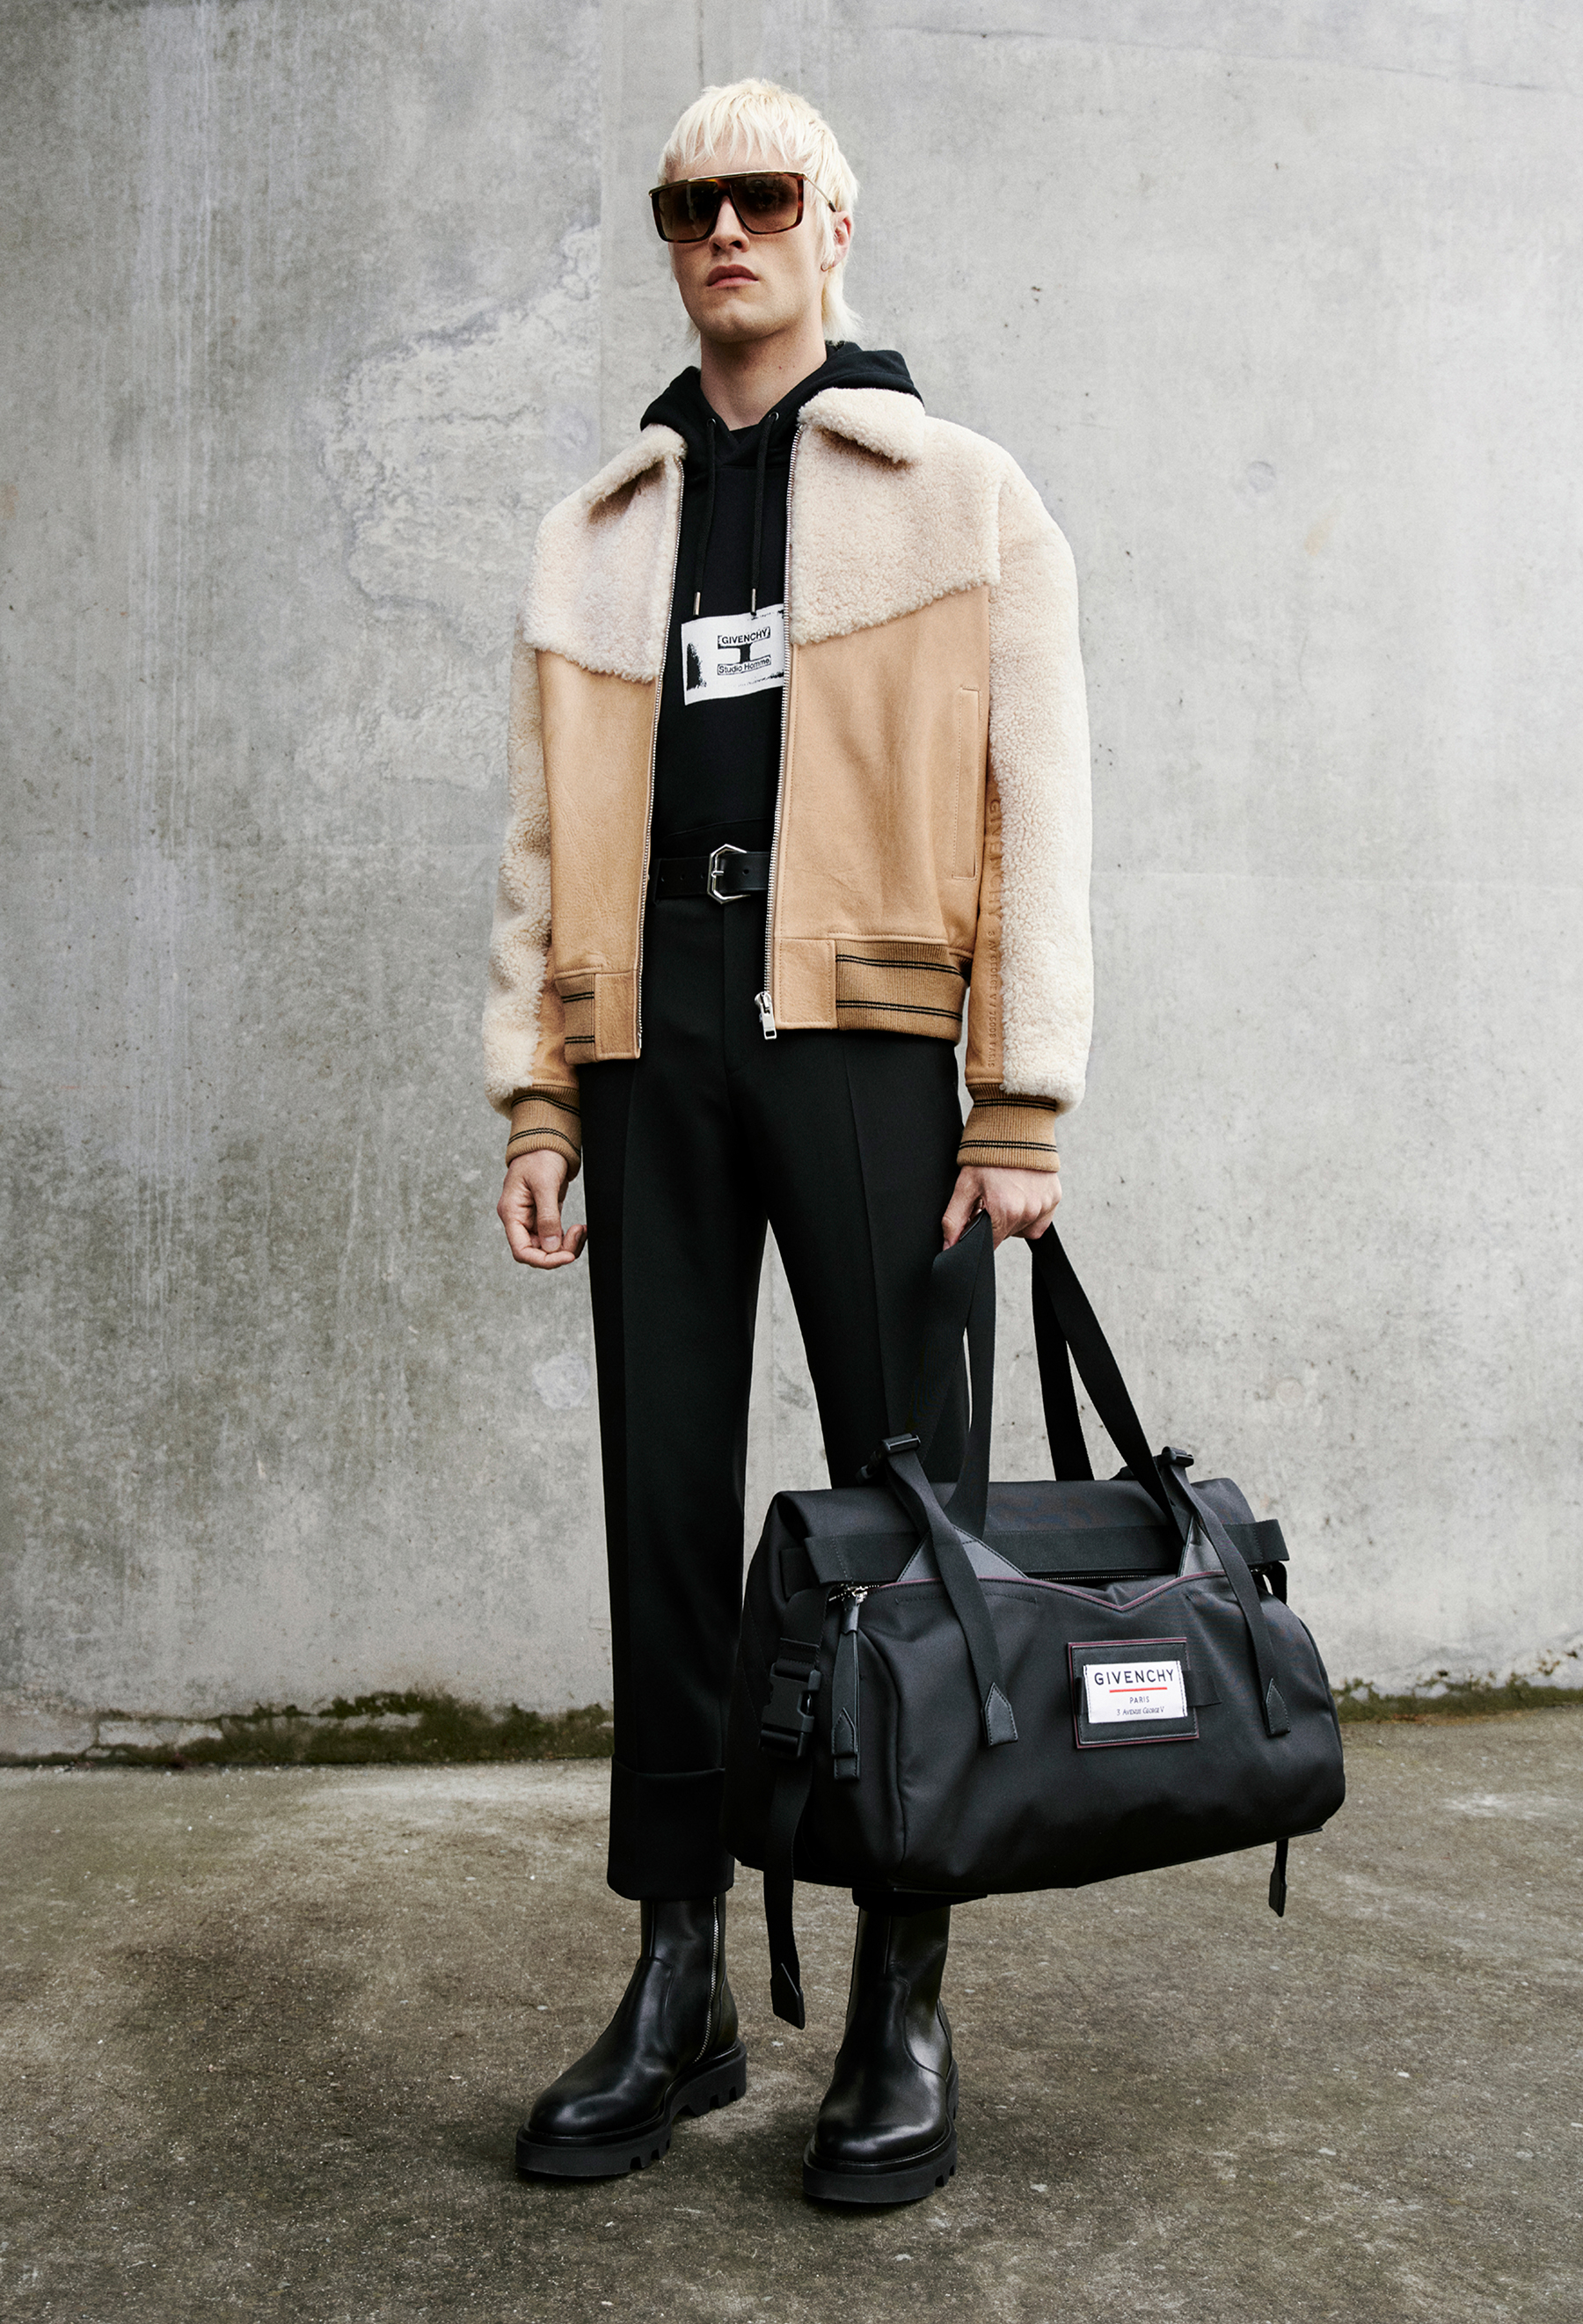 Givenchy Resort 2020 Fashion Collection